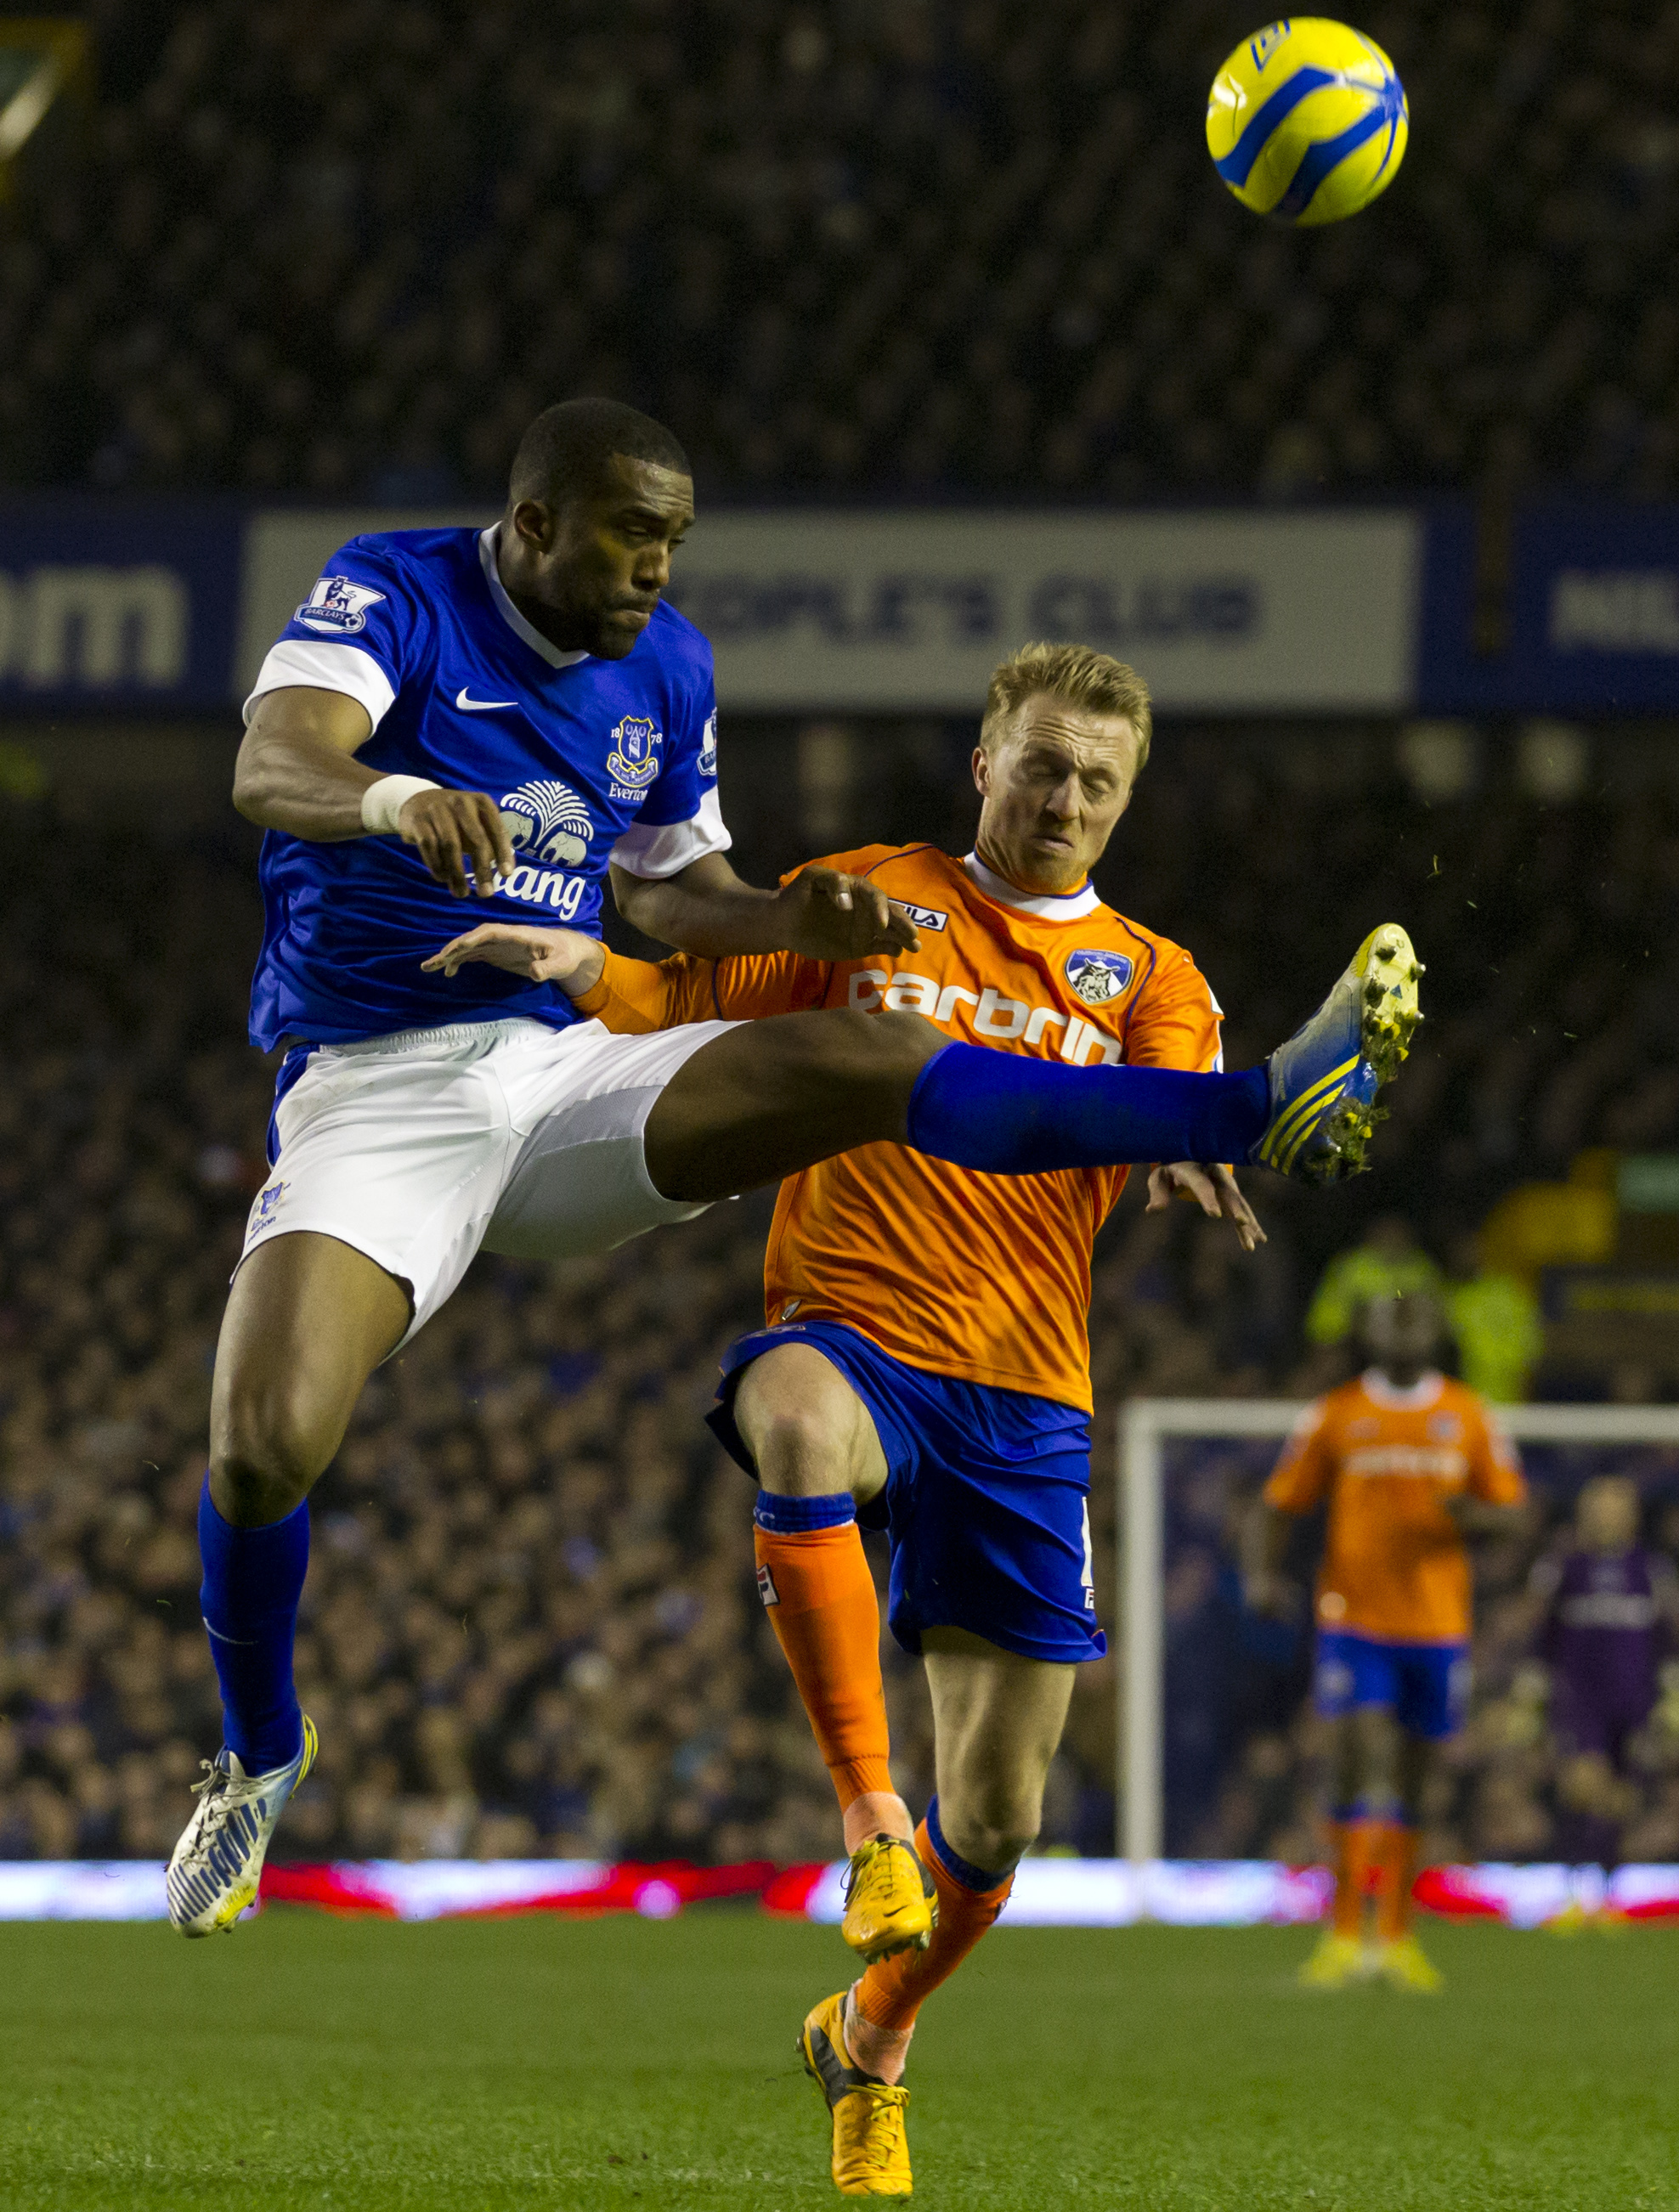 Gallery: Everton v Oldham Athletic – FA Cup – 26 February 2013